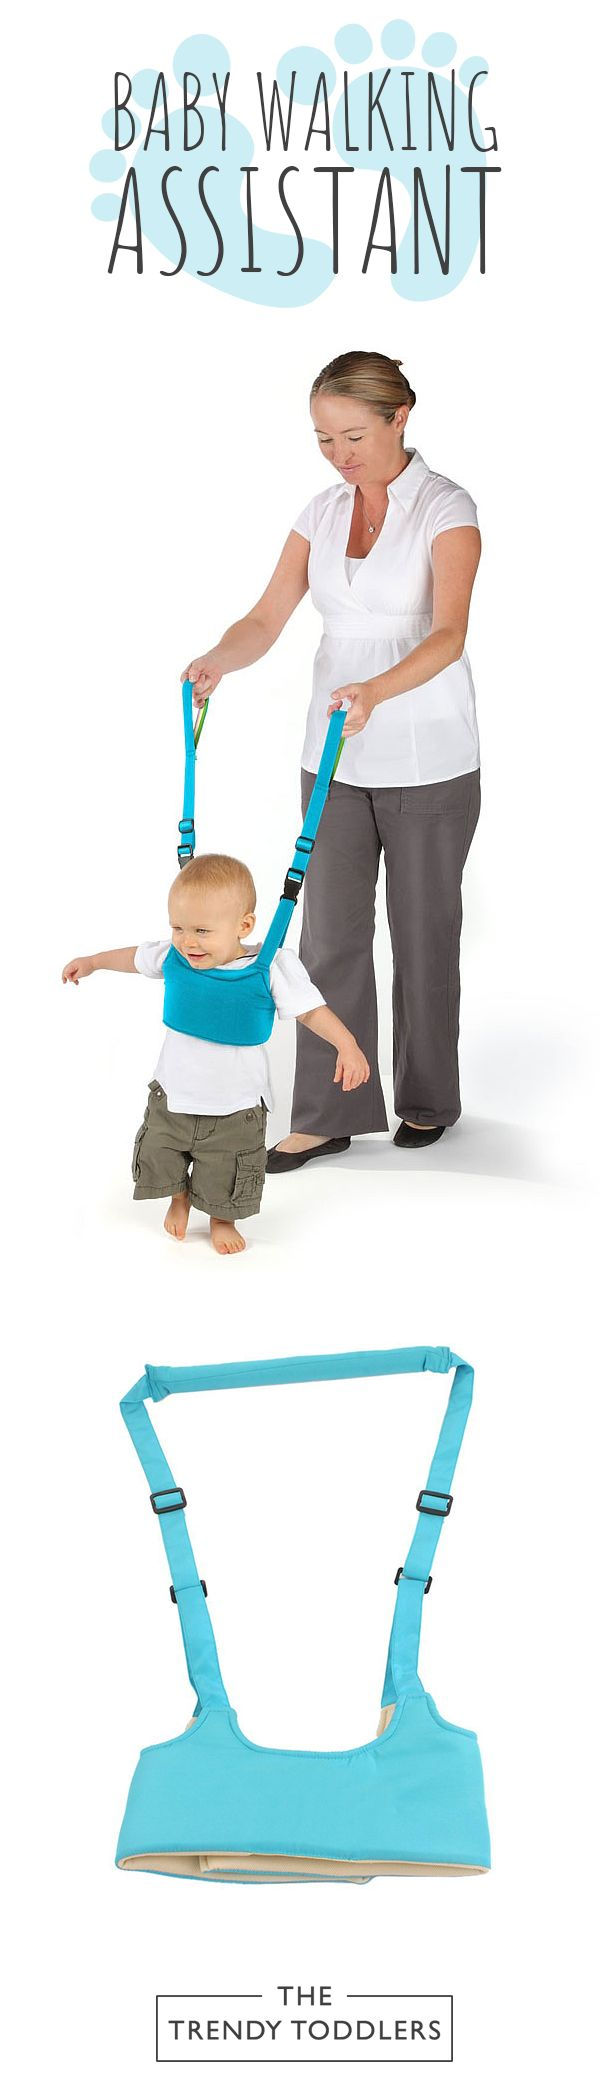 UP TO 50% OFF + FREE SHIPPING! SHOP Our Baby Walking Assistant